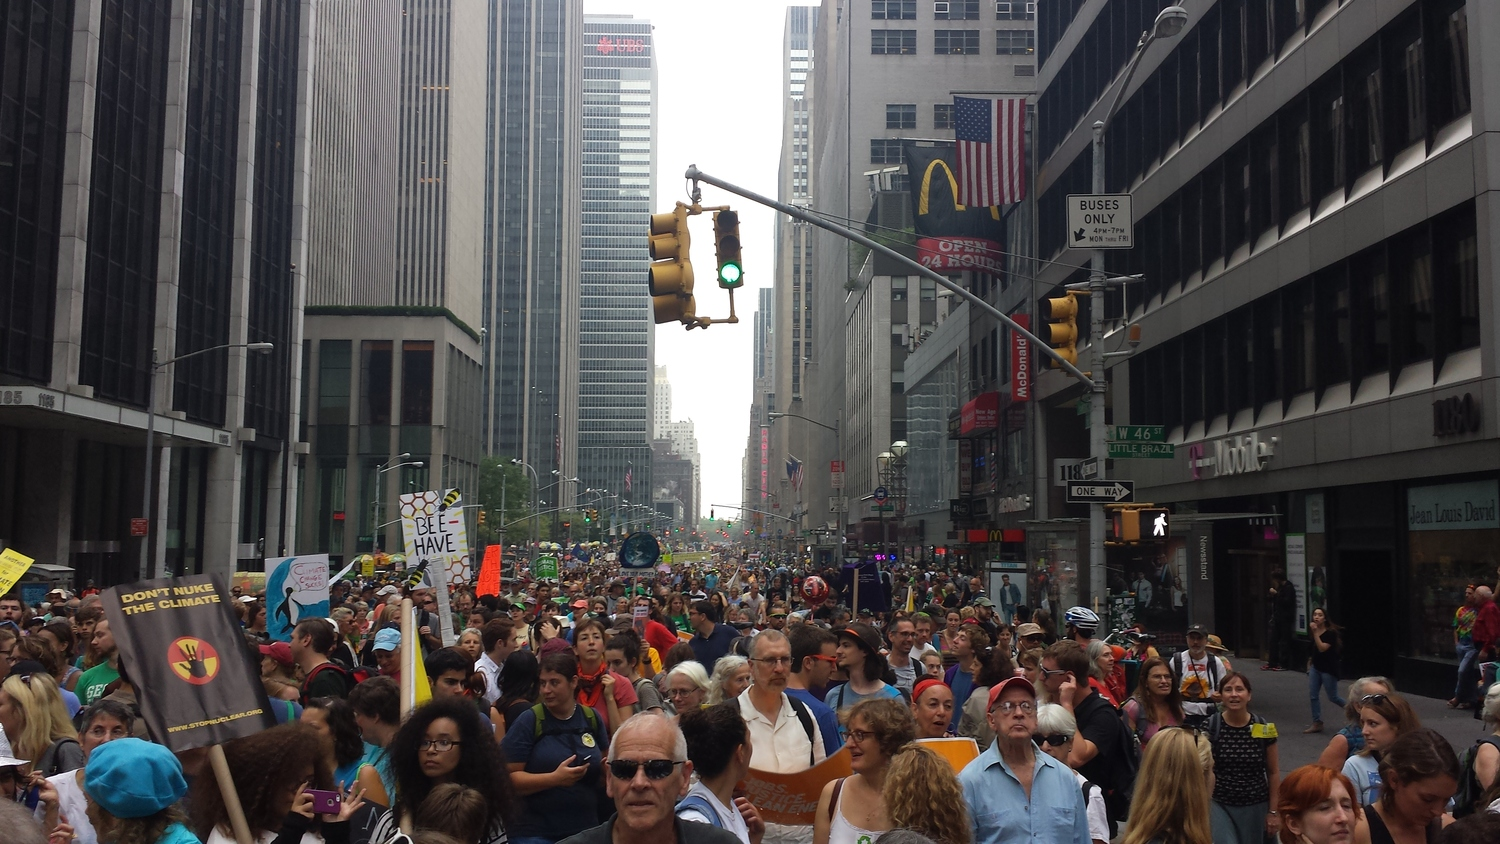 People's Climate March at NYC / Source: Bingjiefu He